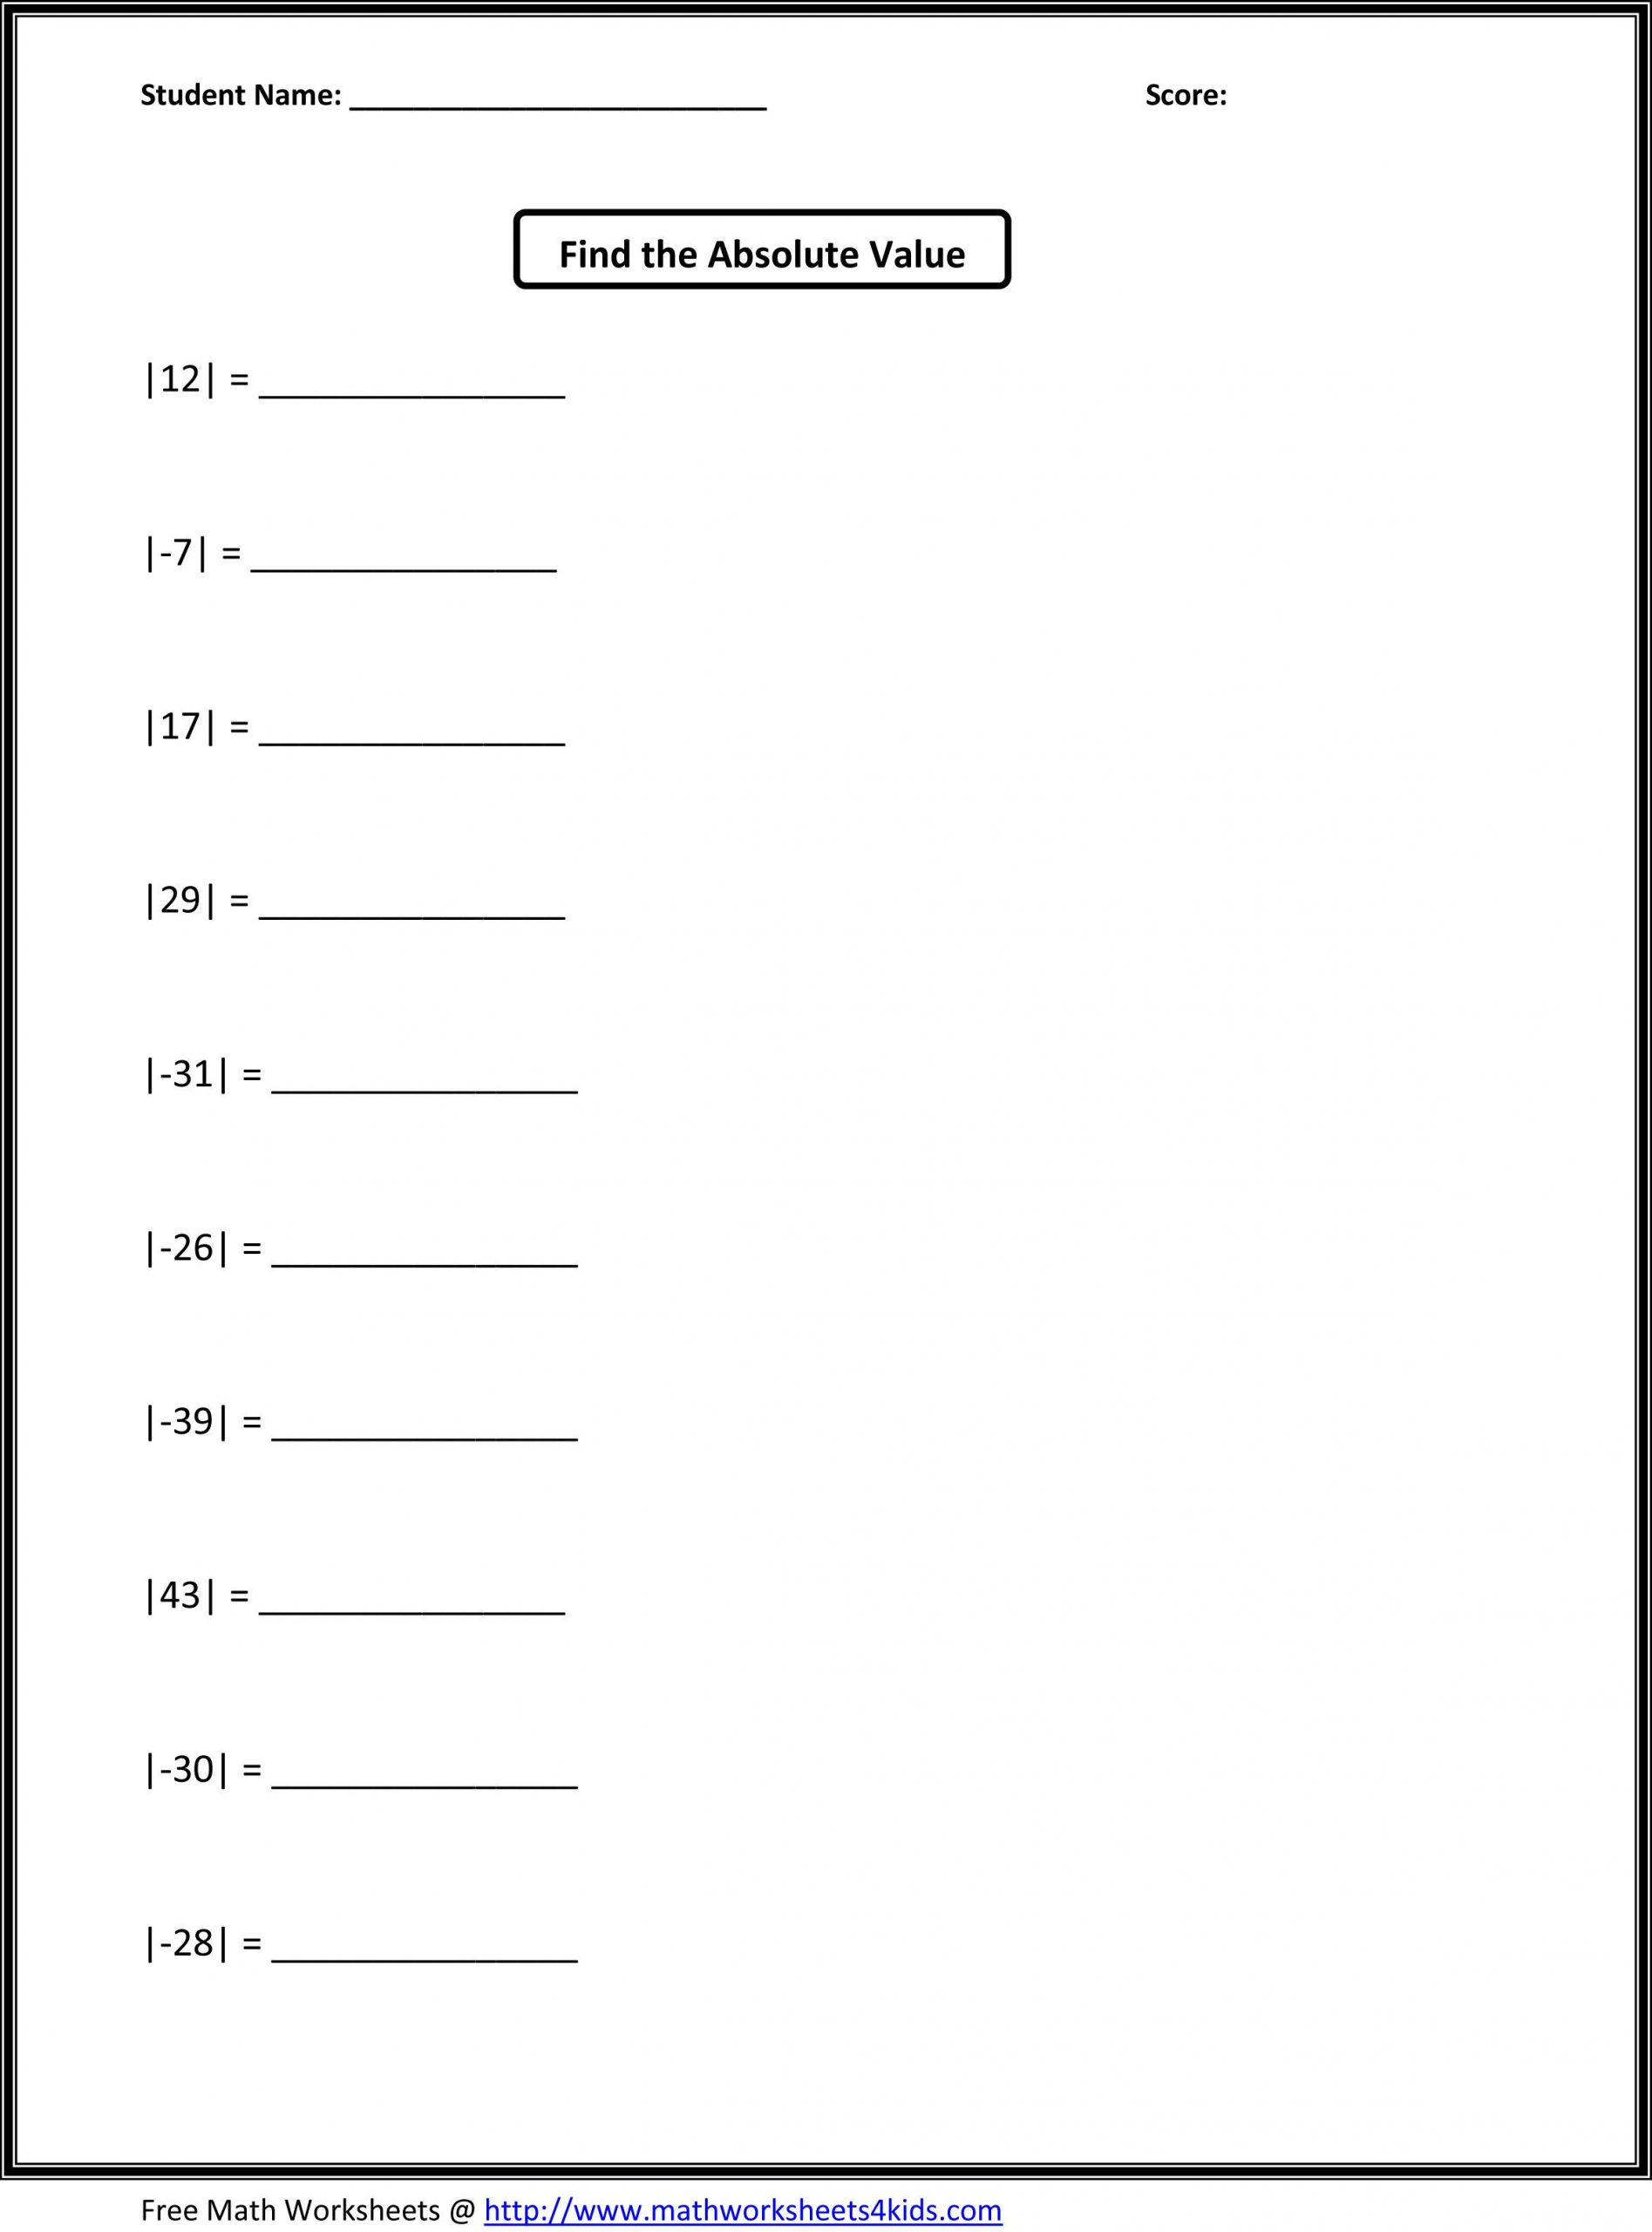 Variables Worksheets 5th Grade Free Math Worksheets for 5th Grade